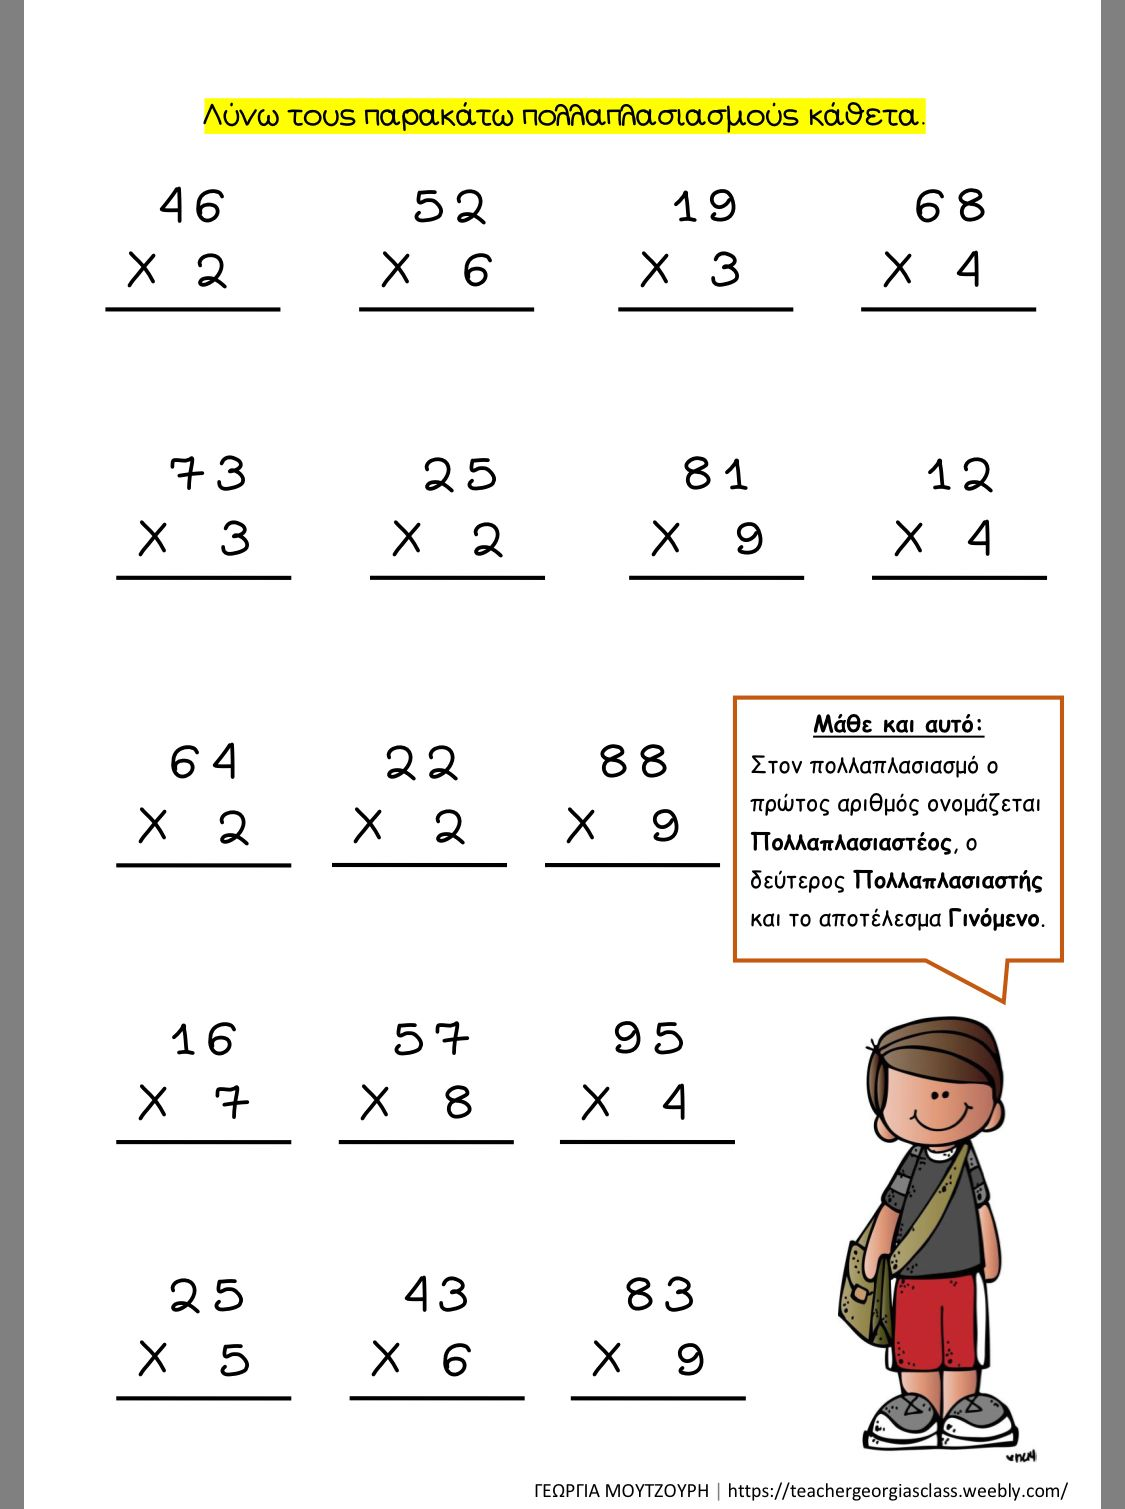 Pin by Ioanna on Μαθηματικά in 2020 | Math fact worksheets ...